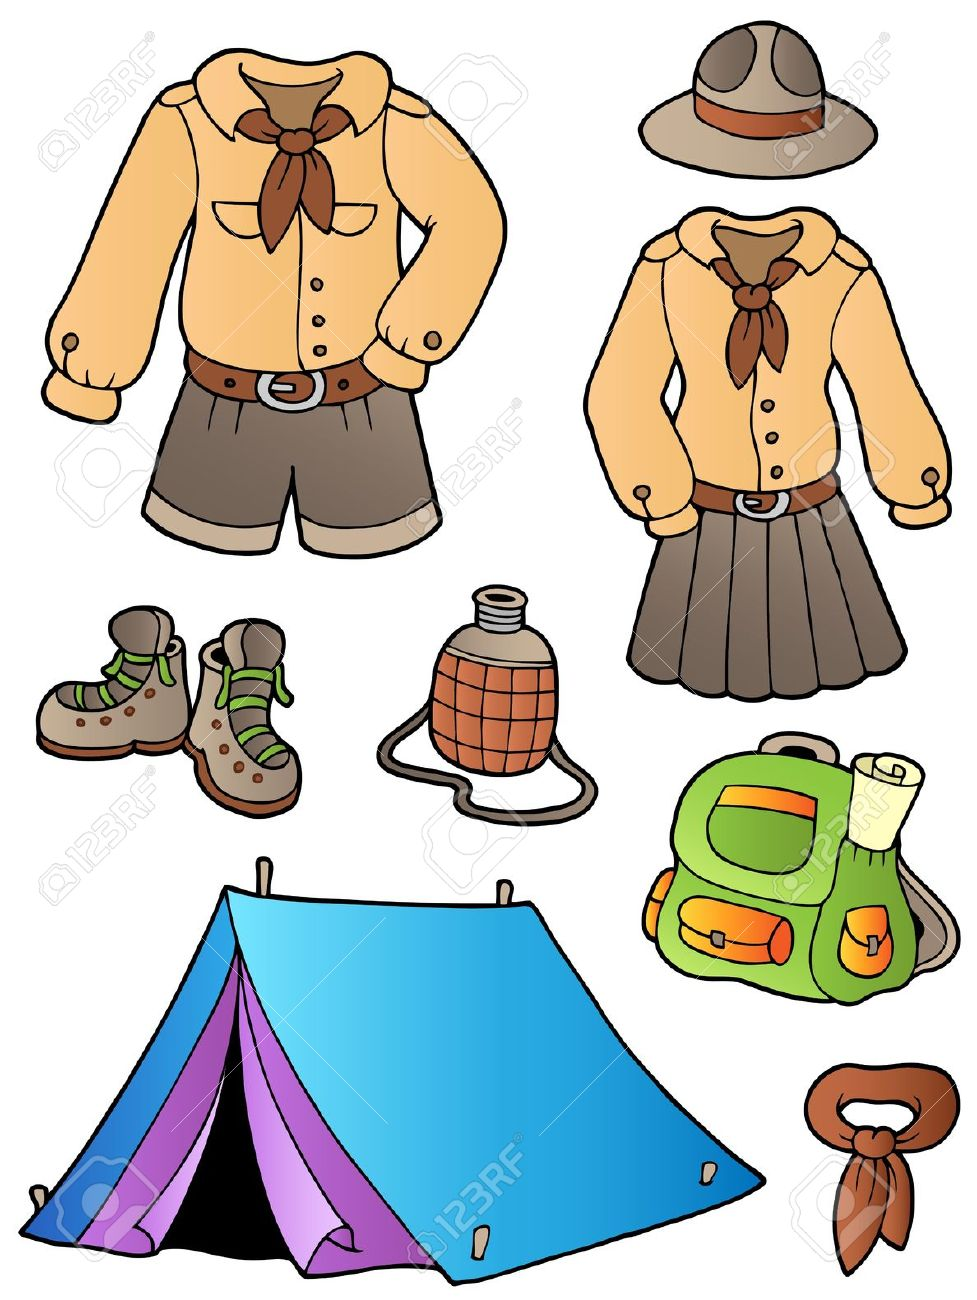 977x1300 Camping Clipart Camping Gear